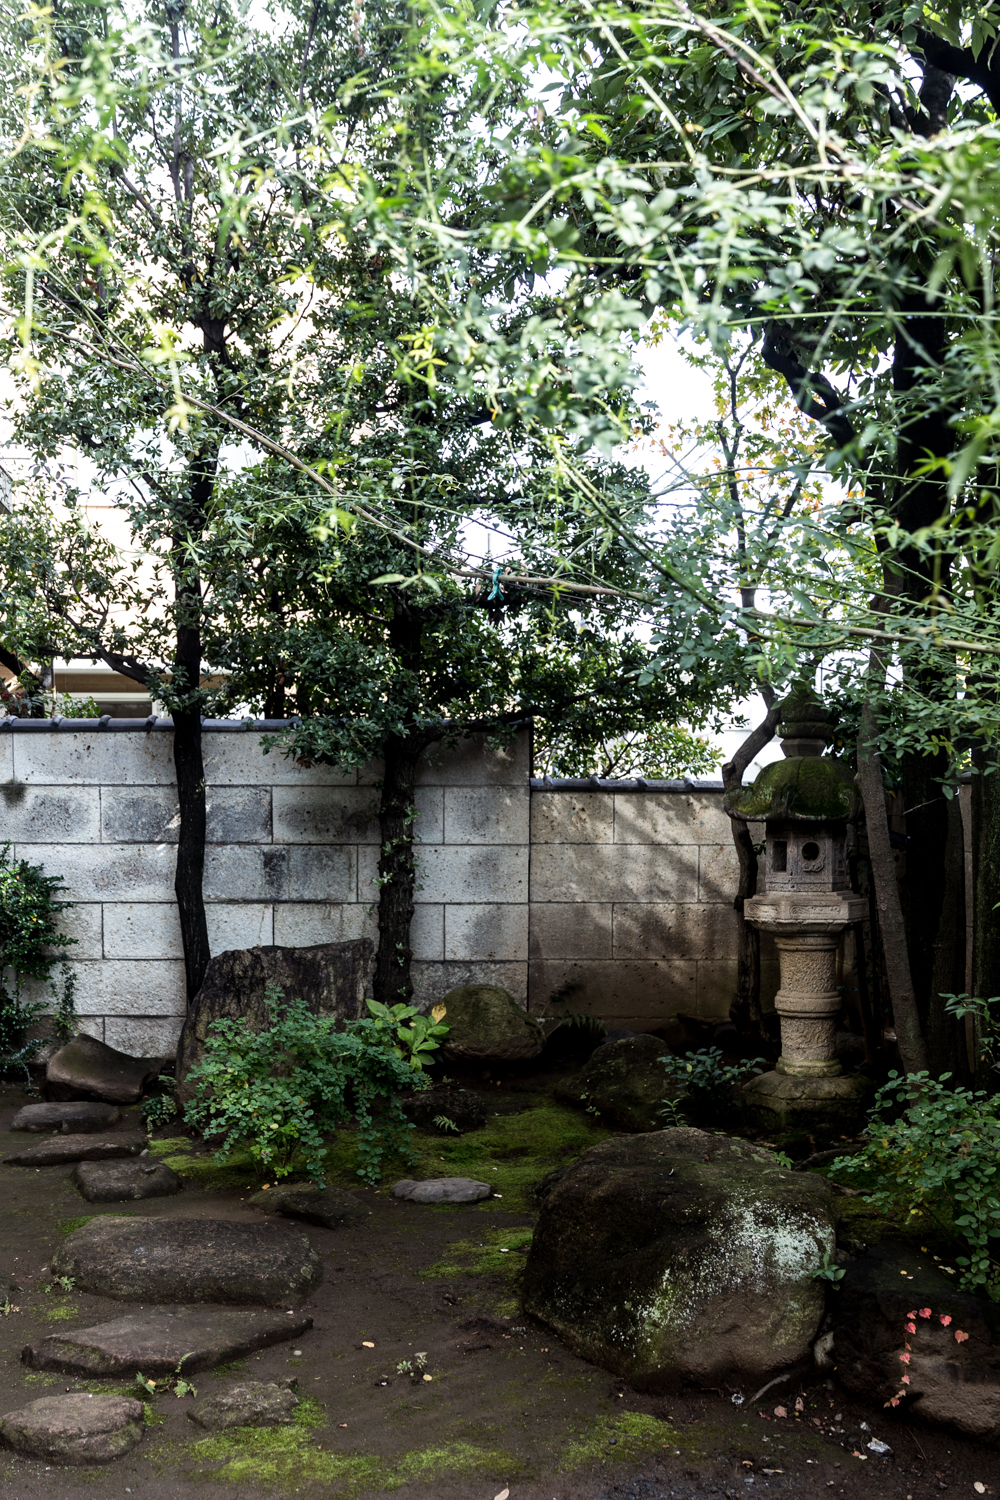 The courtyard garden at our Omotesando apartment